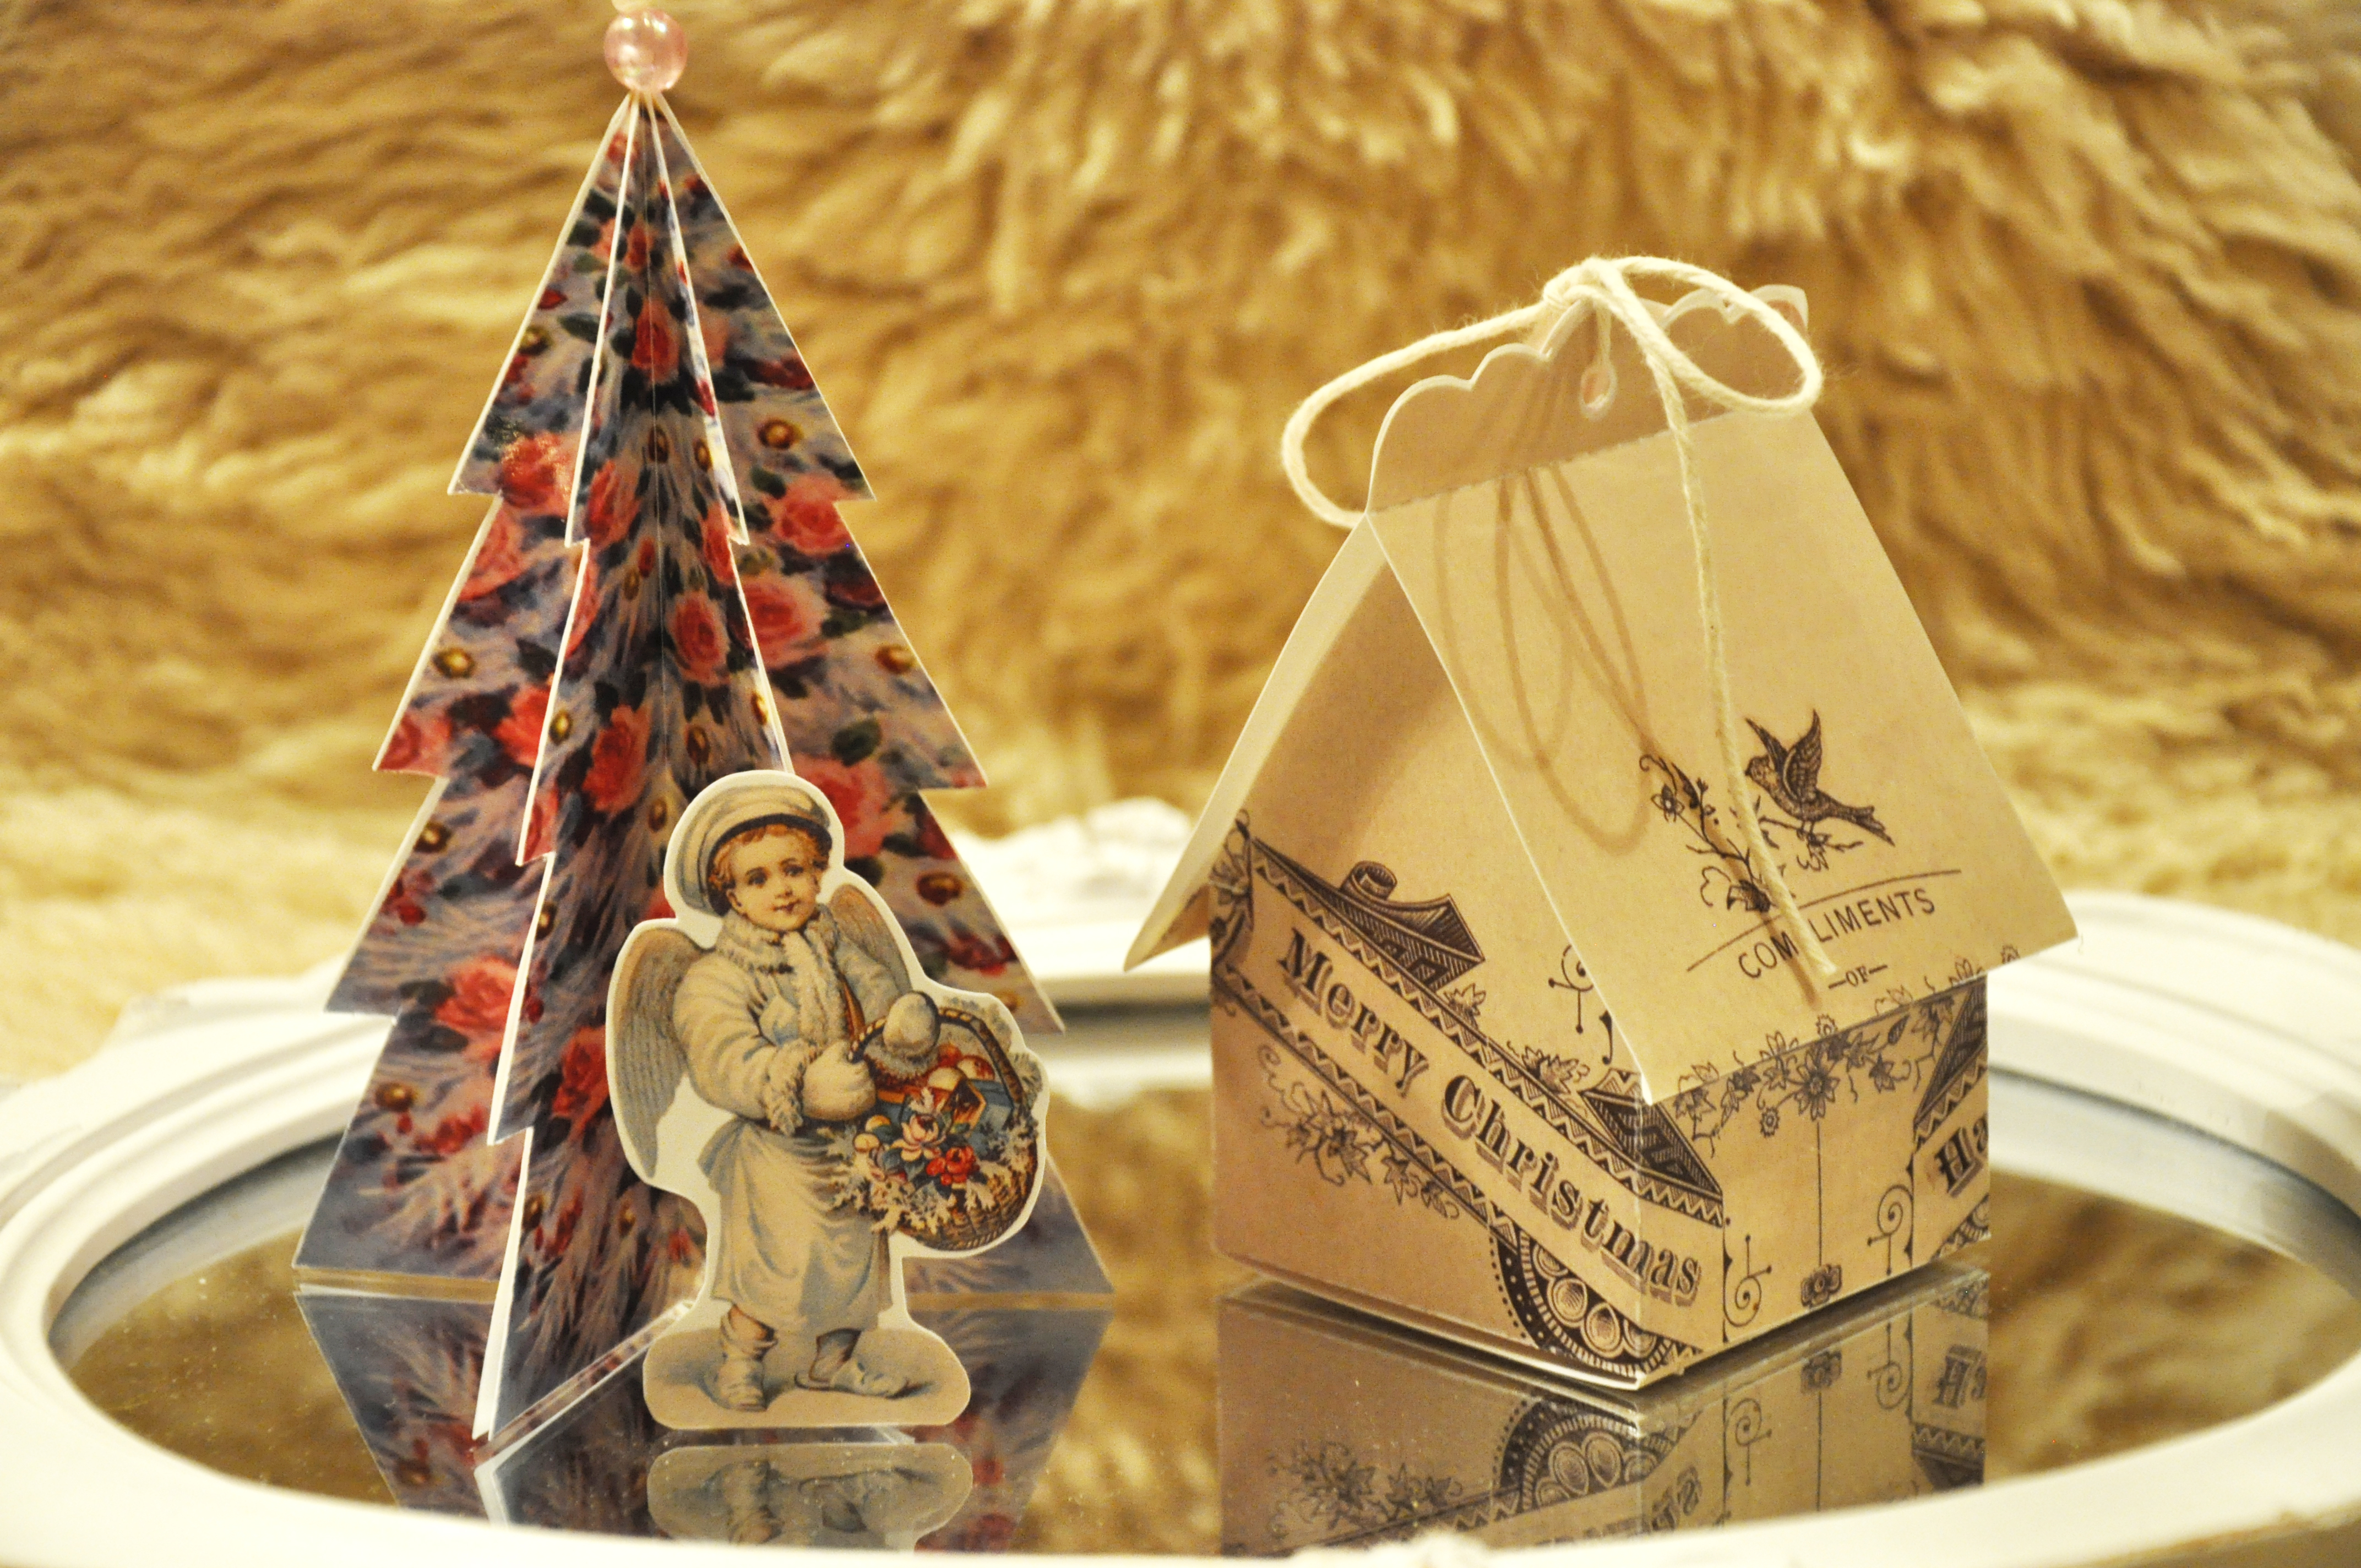 Diy retro christmas decorations - Wings Of Whimsy Vintage Christmas Village Day 24 Free Printables Vintage